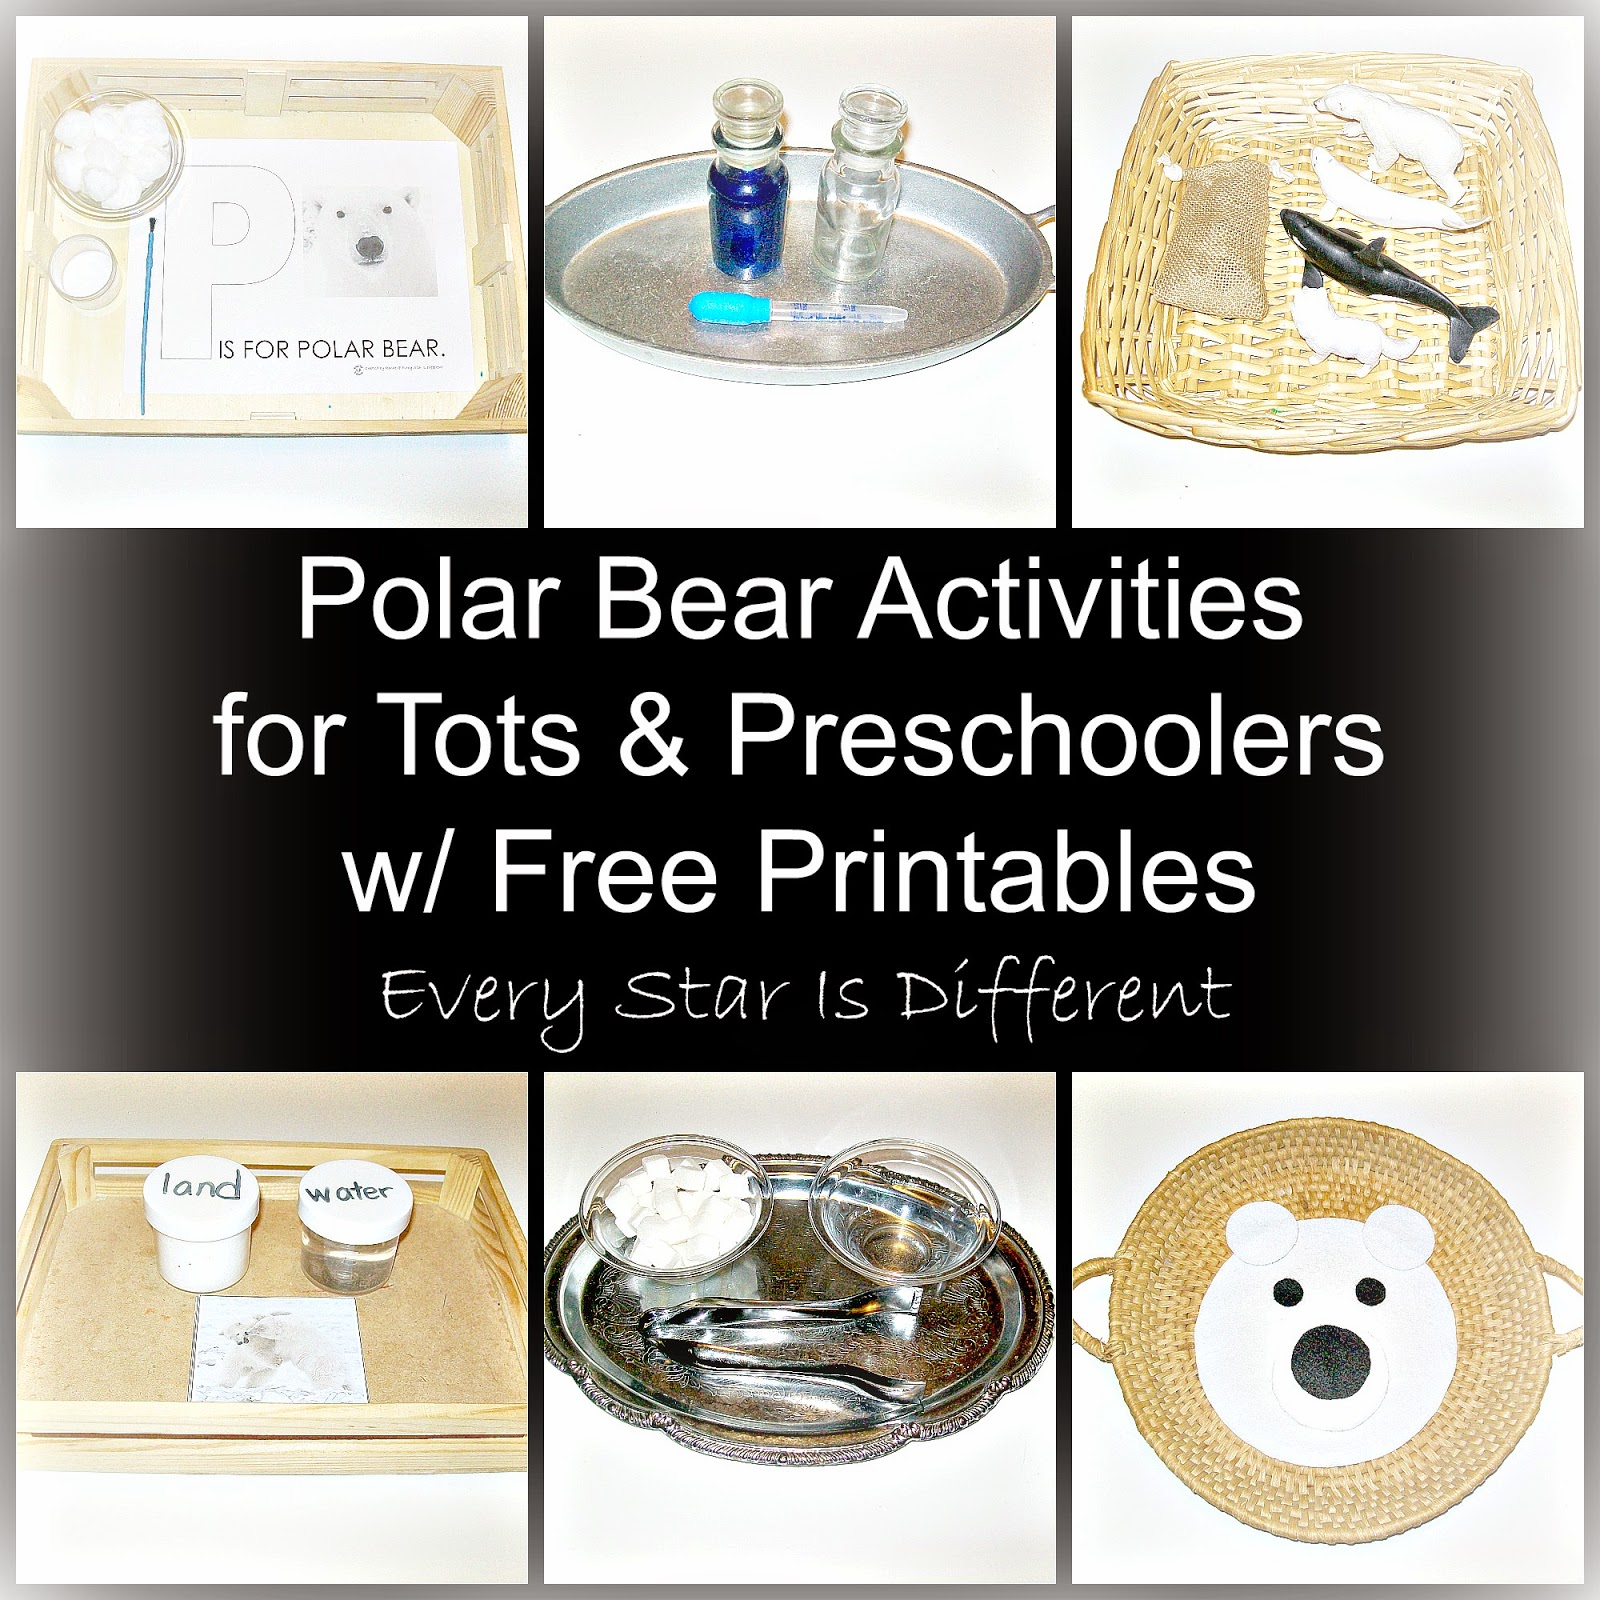 Polar Bear Activities for Tots and Preschoolers